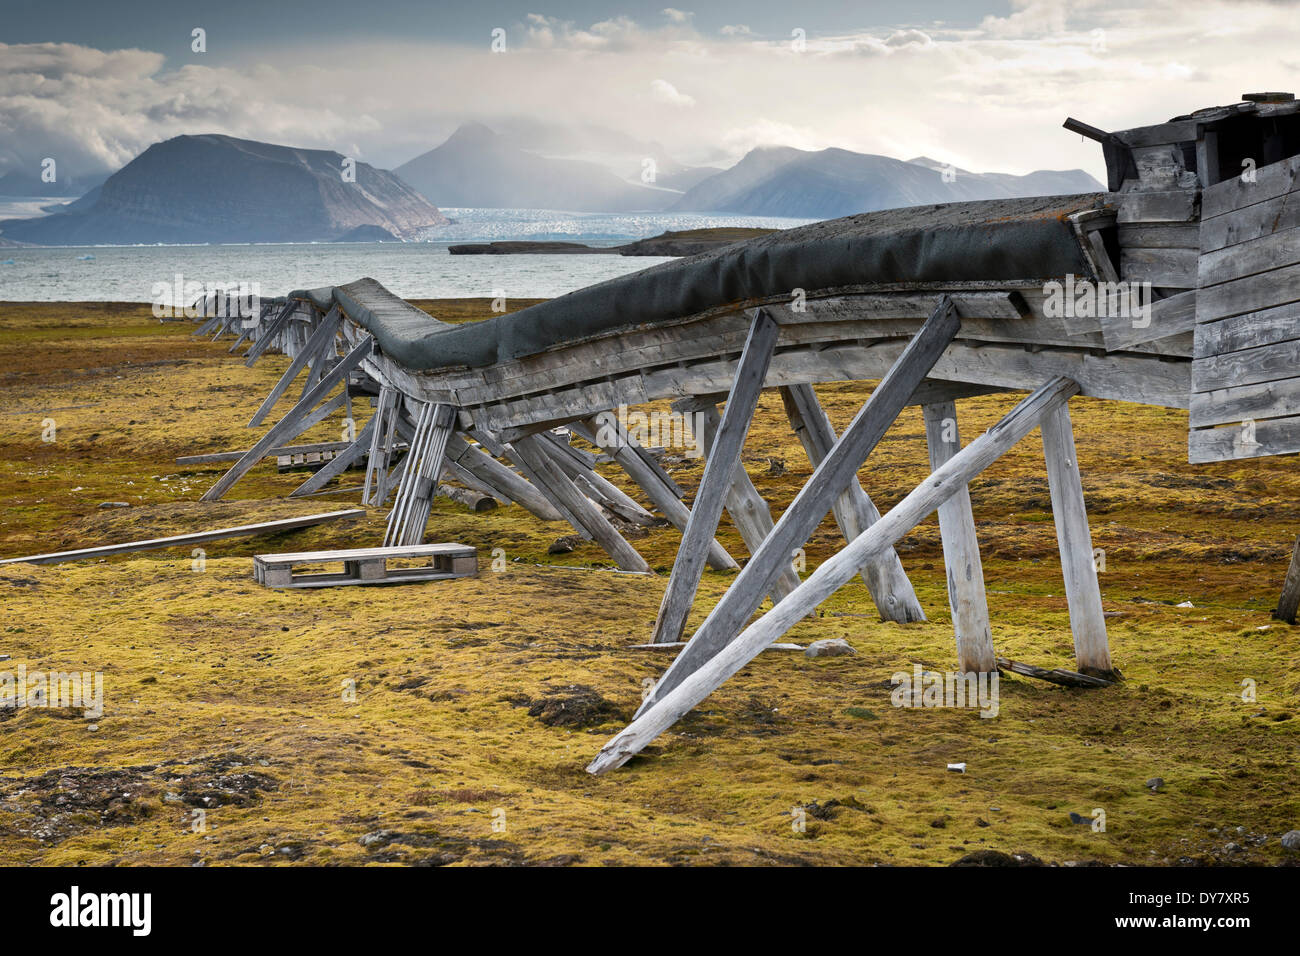 Old water pipeline, on stilts above ground because of the permafrost, Kongsfjorden, Ny-Alesund, Spitsbergen, Svalbard Islands - Stock Image